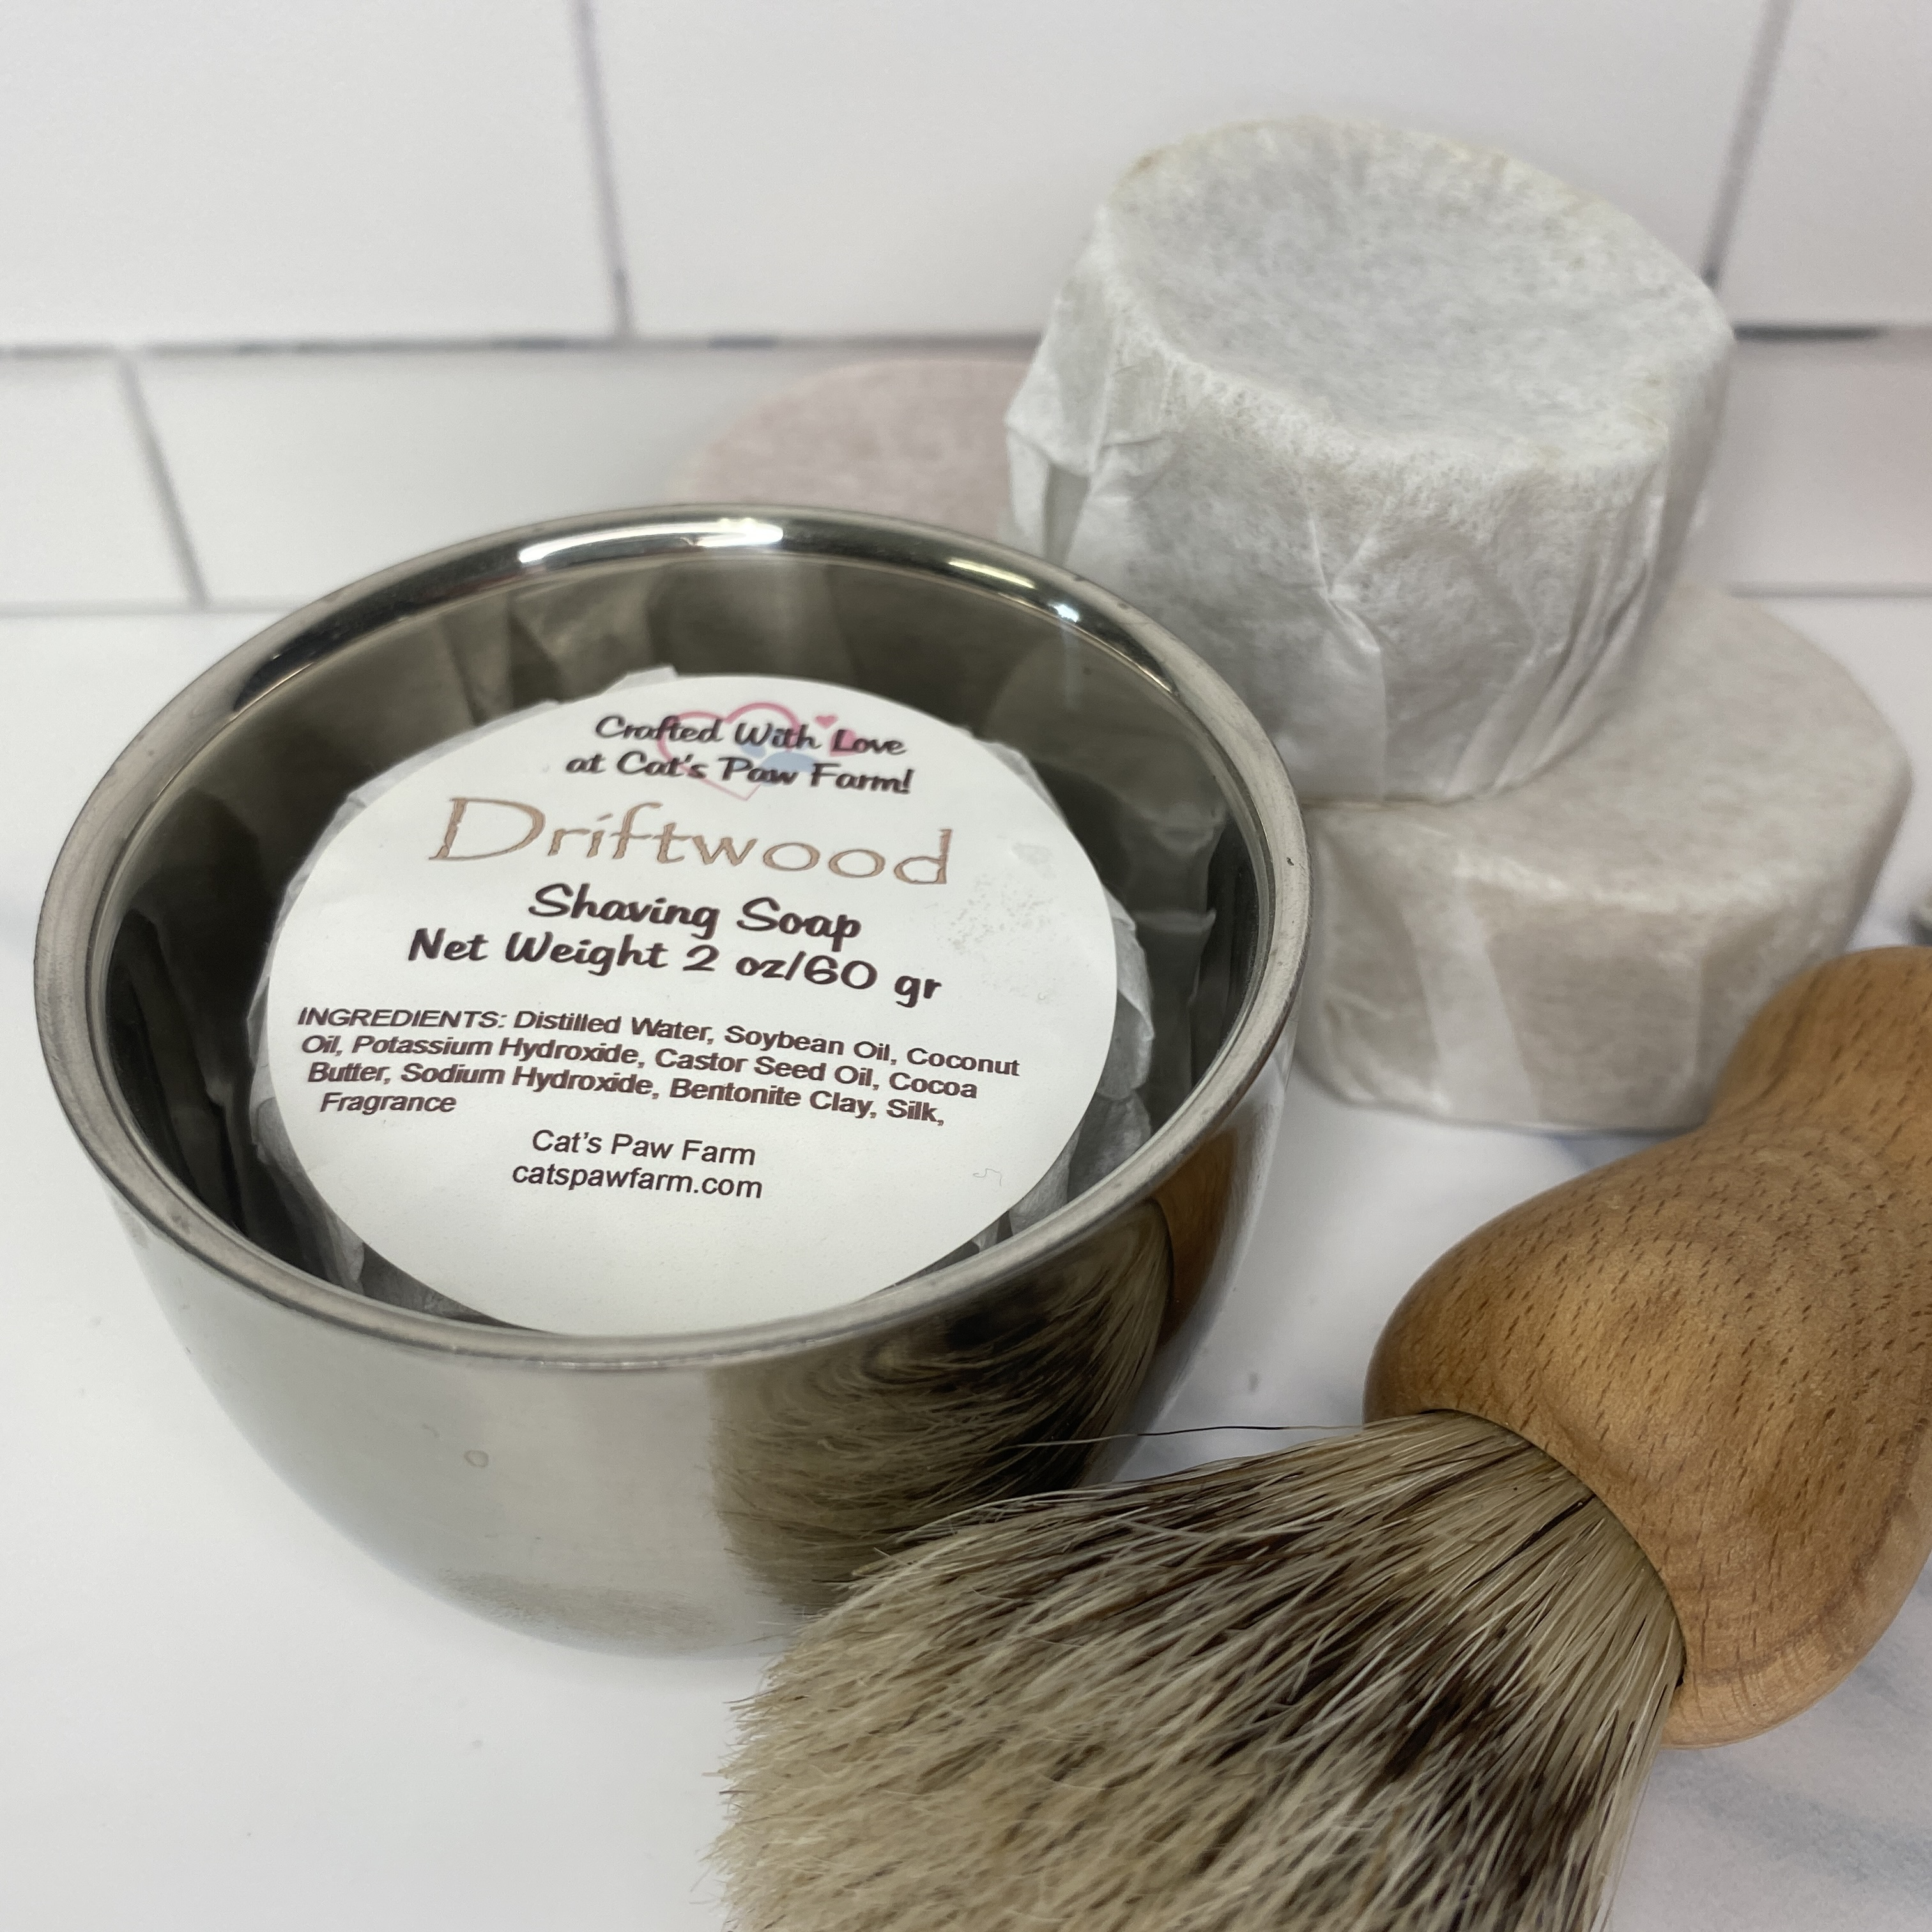 Driftwood Shaving Soap